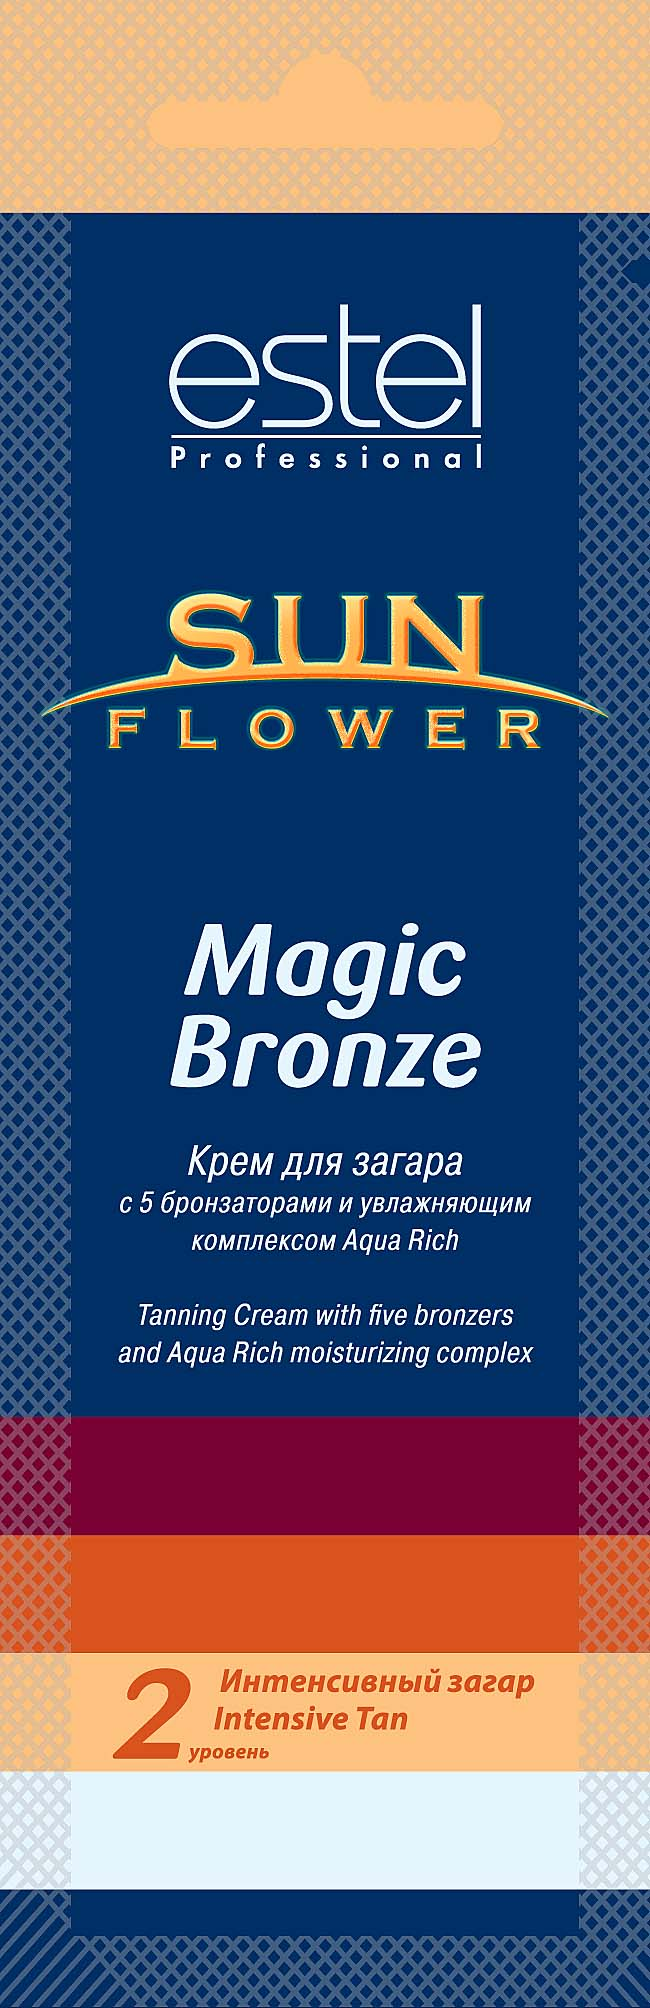 ESTEL PROFESSIONAL Крем для загара / Sun Flower Magic Bronze 15мл